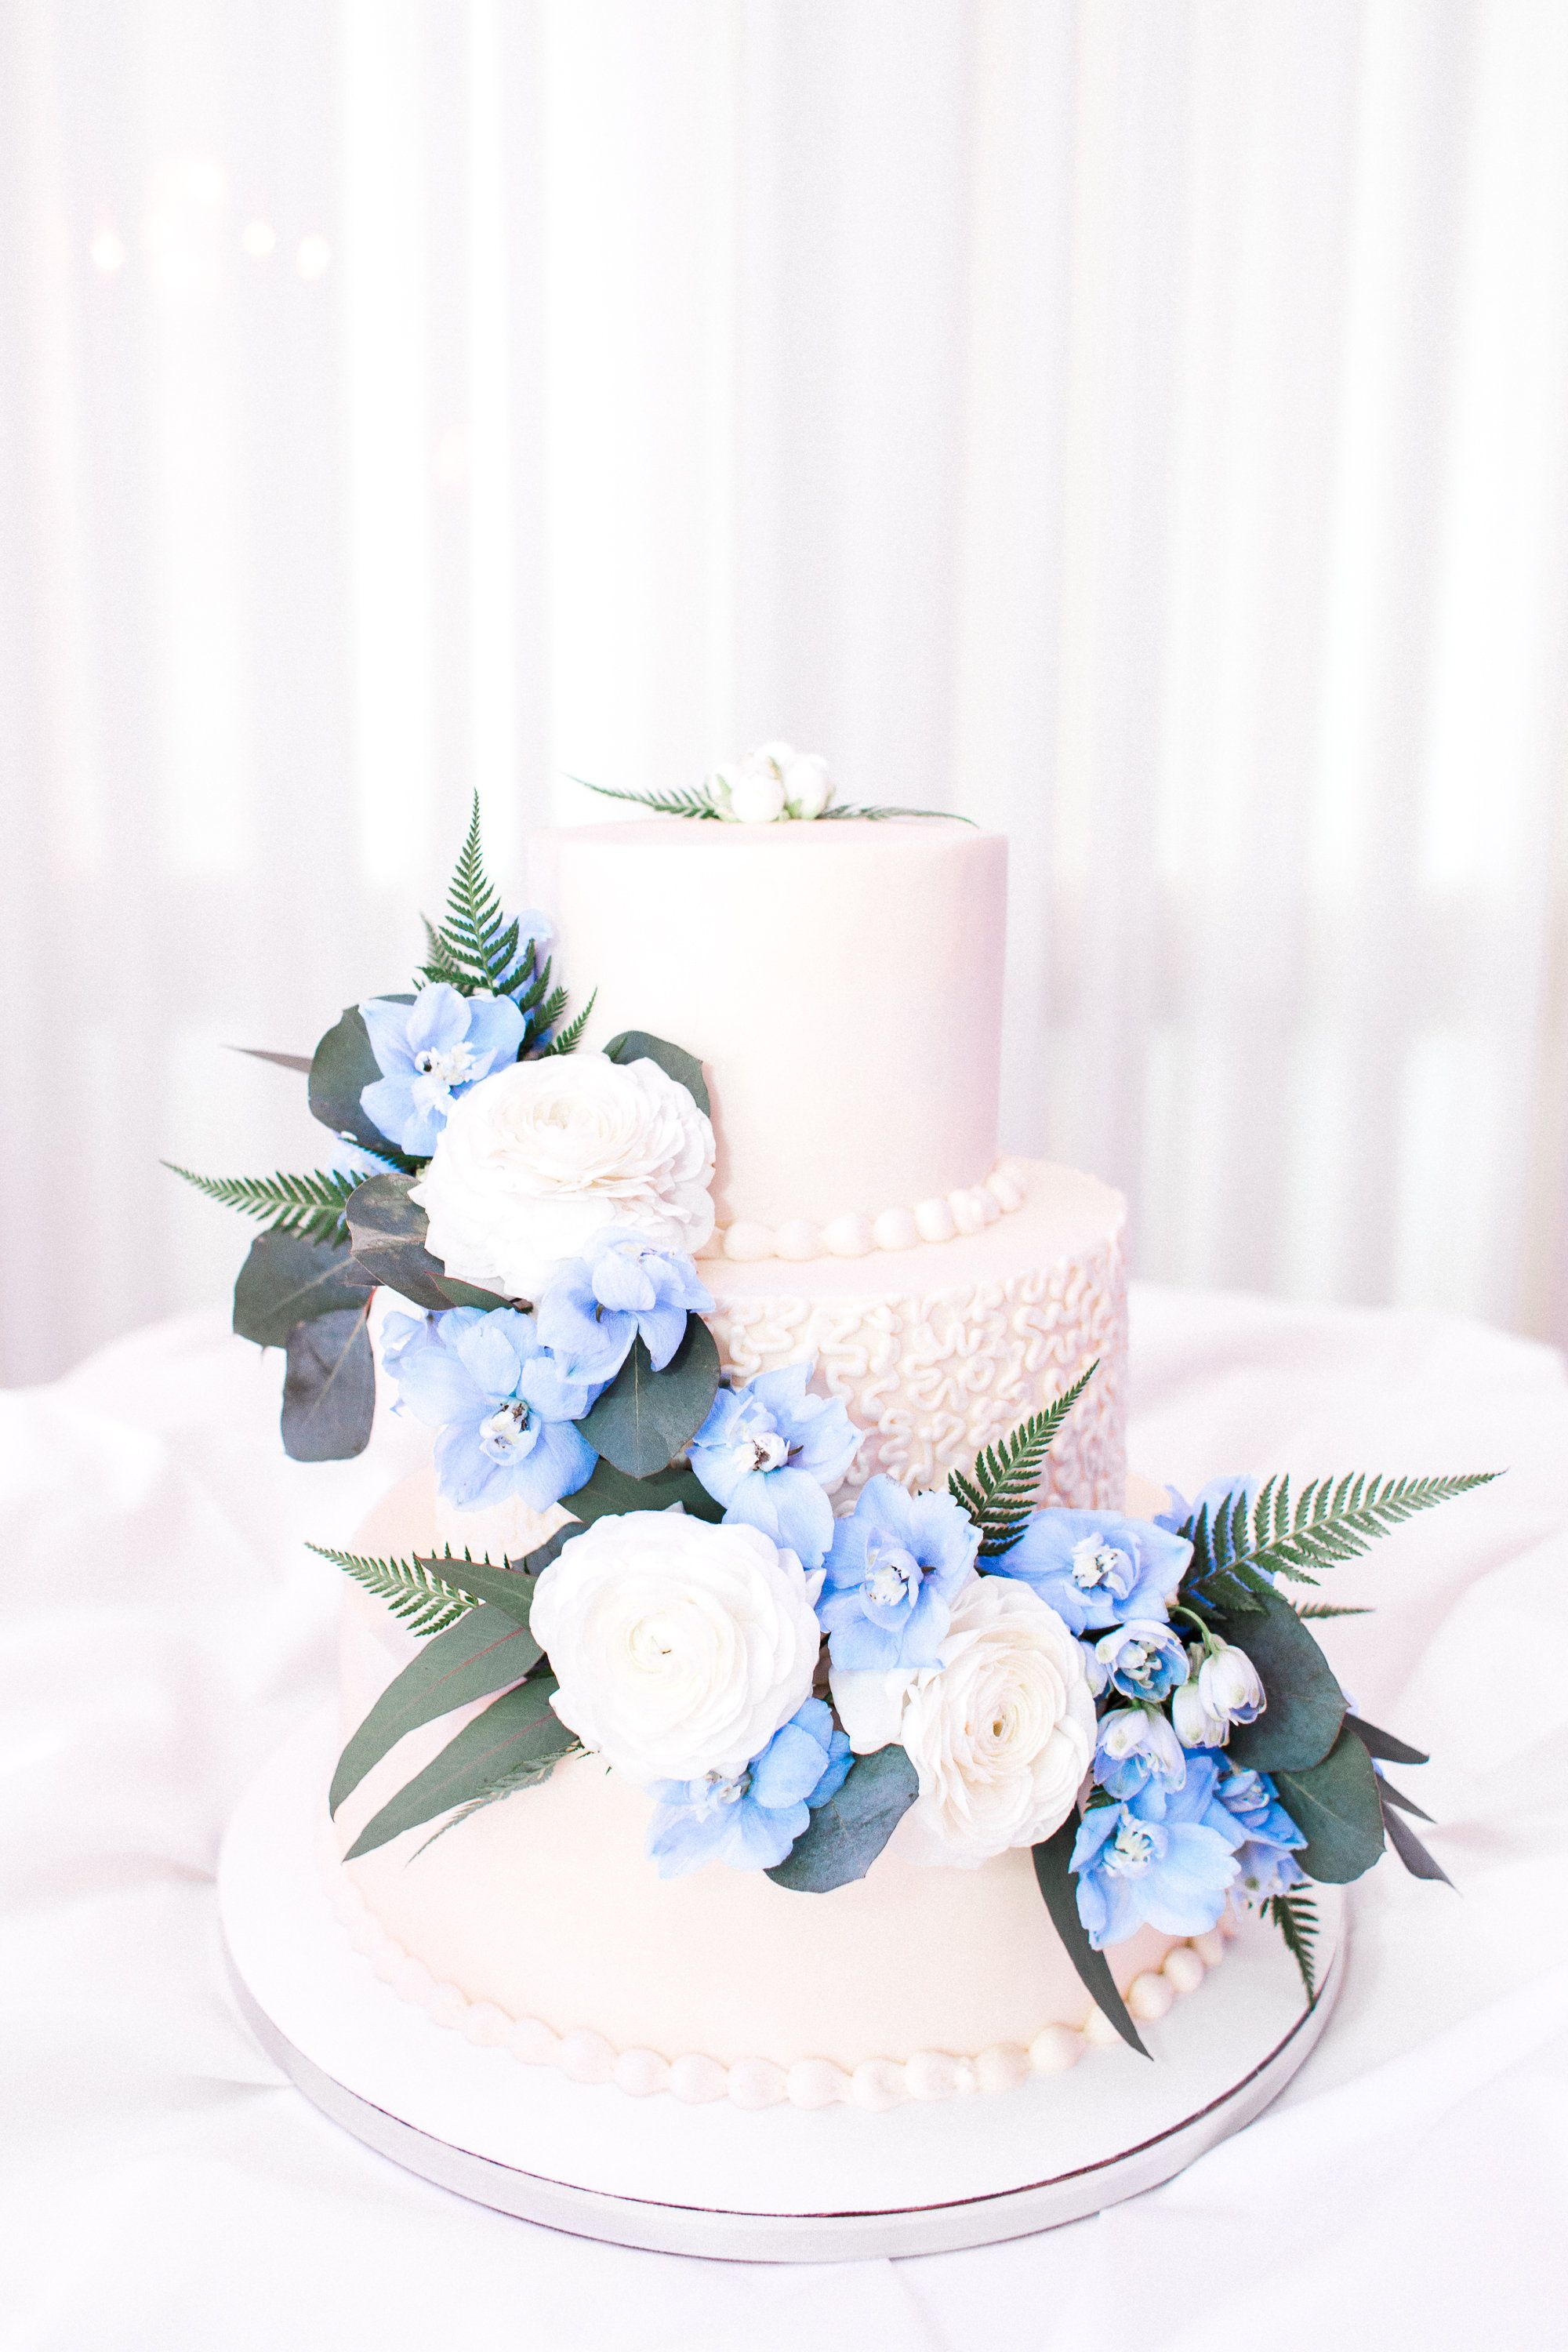 Tiered wedding cake with blue floral accents planning a spring